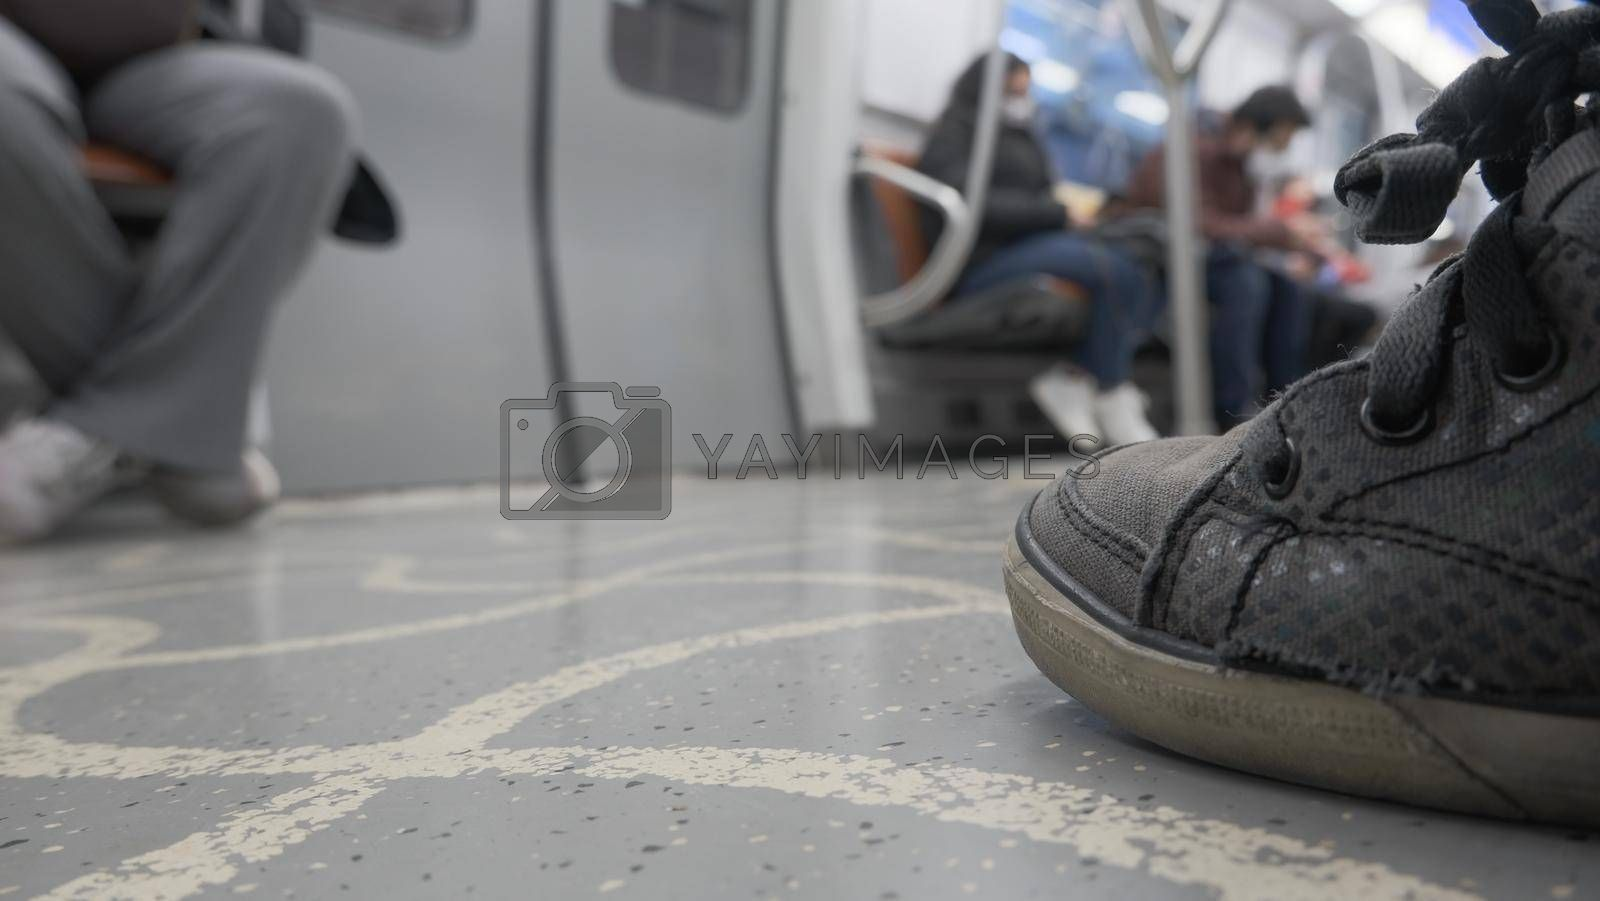 It depicts a low angle view of subway passengers sitting